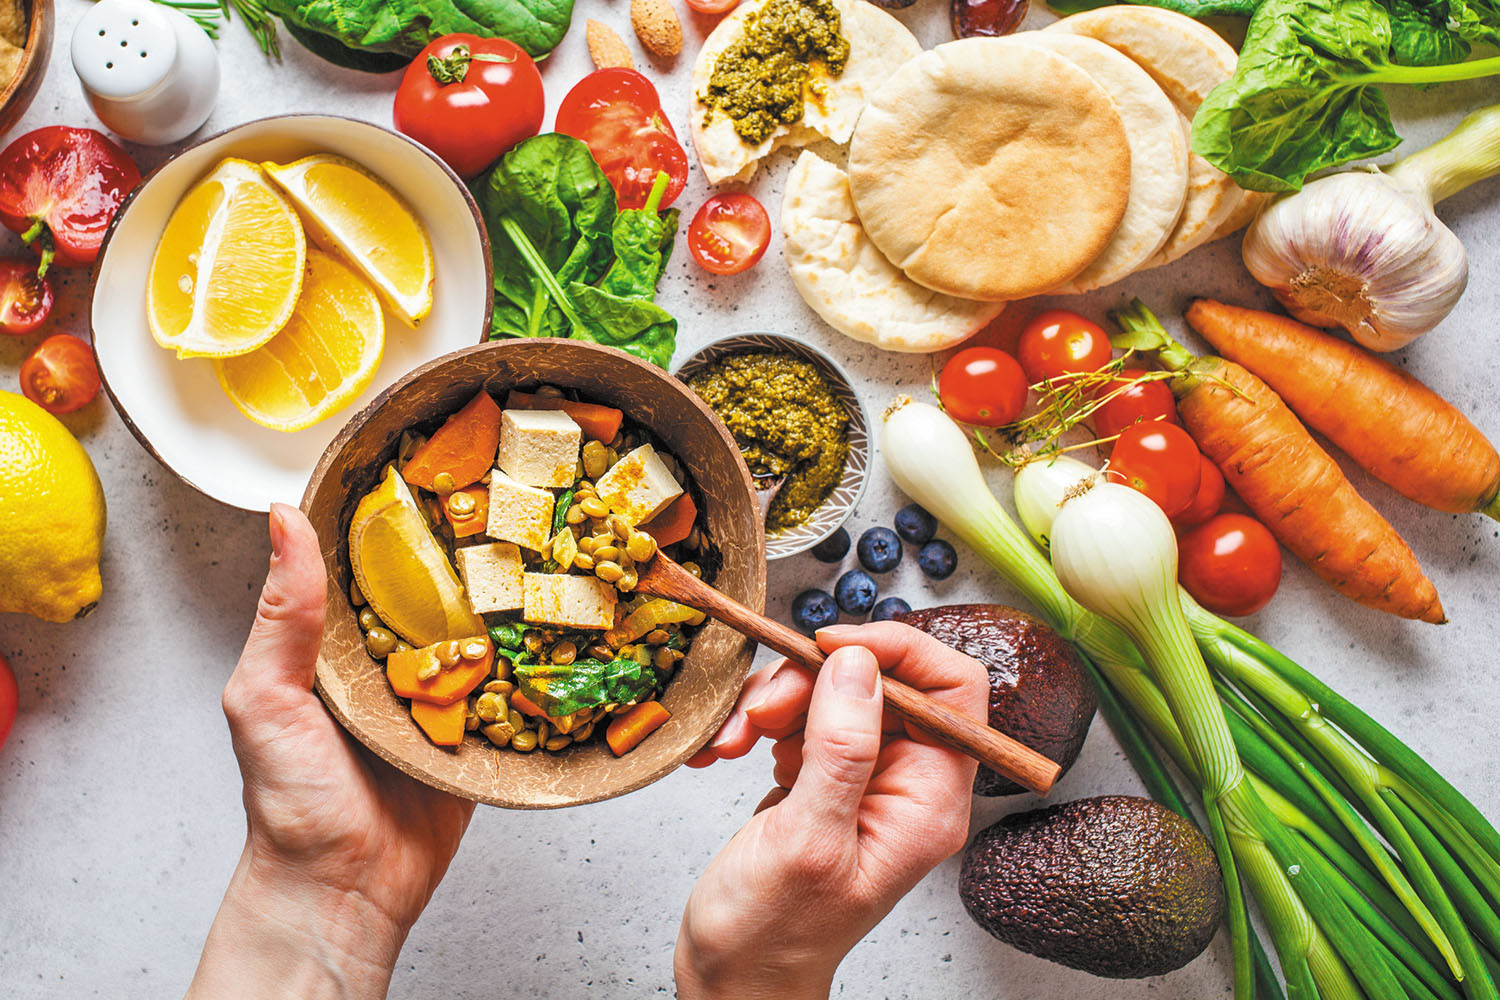 Paleo Diet: What Exactly Is It?